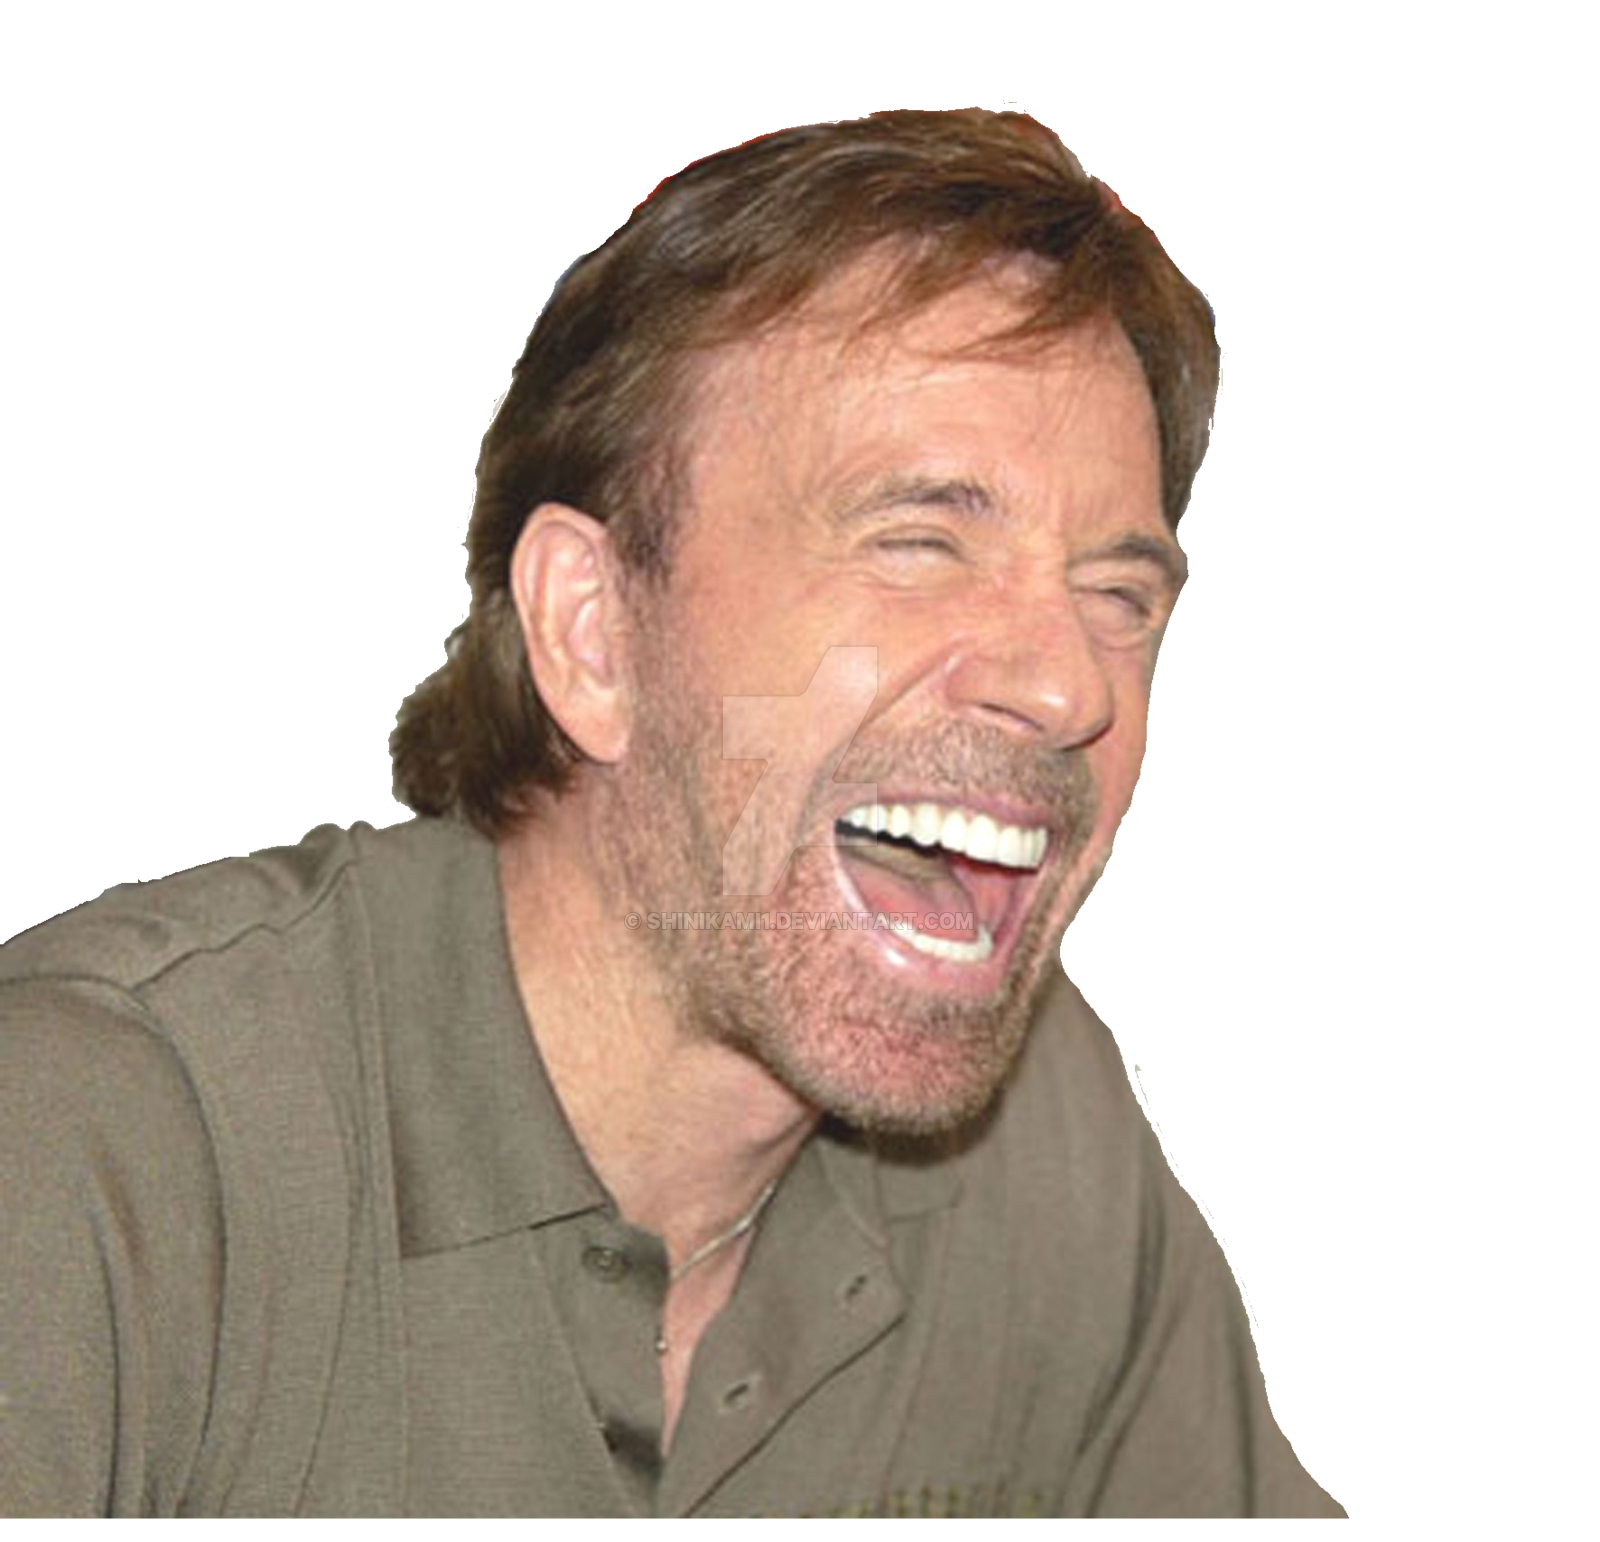 HQ Chuck Norris Wallpapers | File 1228.72Kb